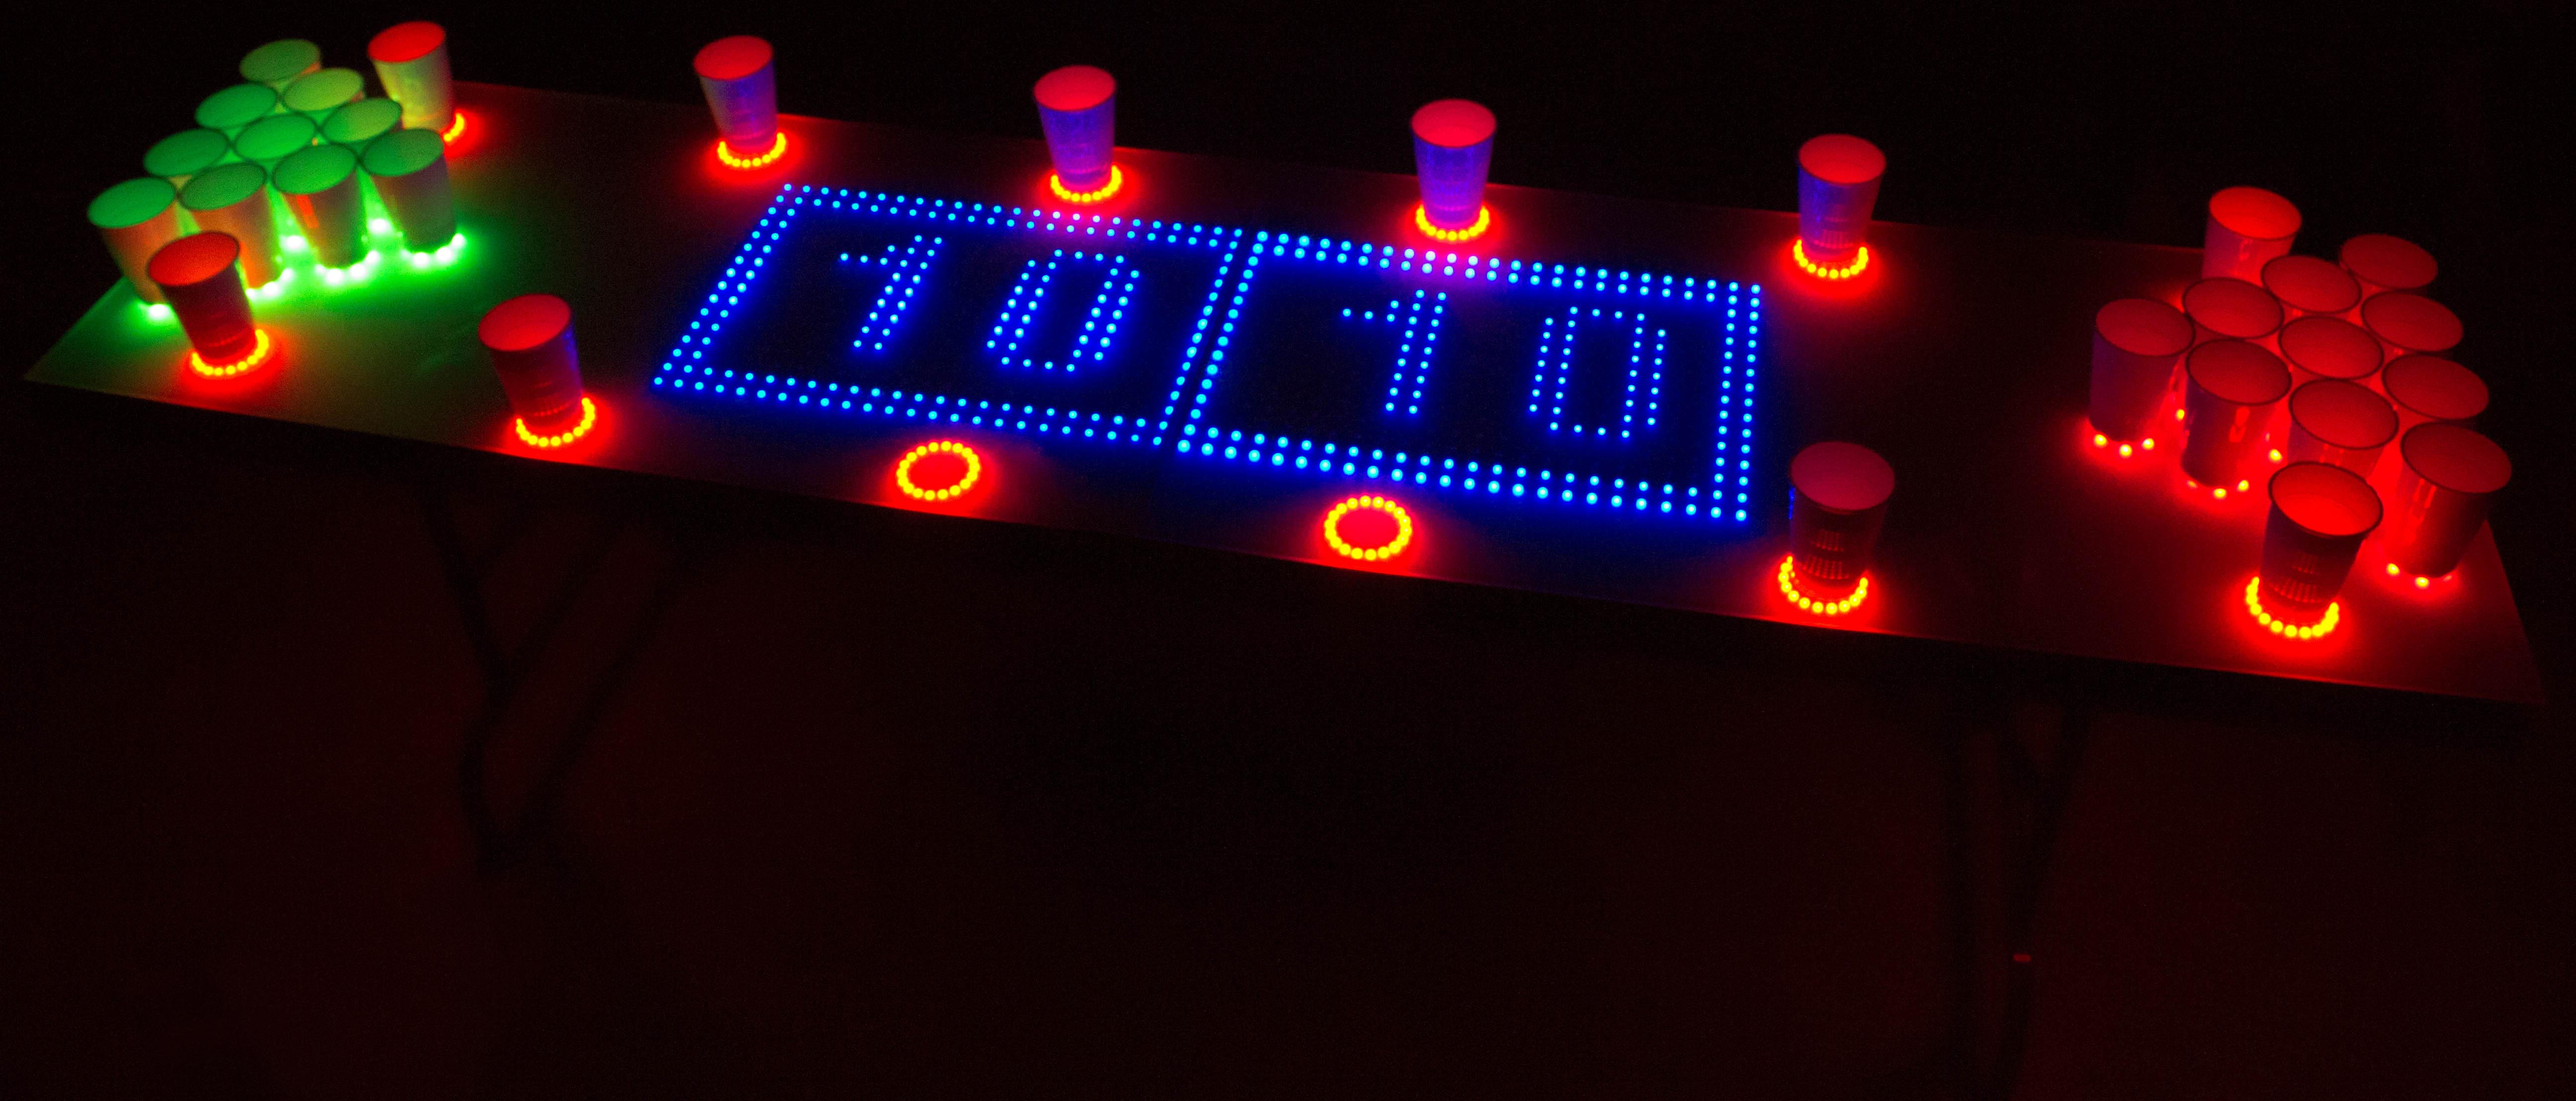 Ravetable Interactive Beer Pong Table Chexal